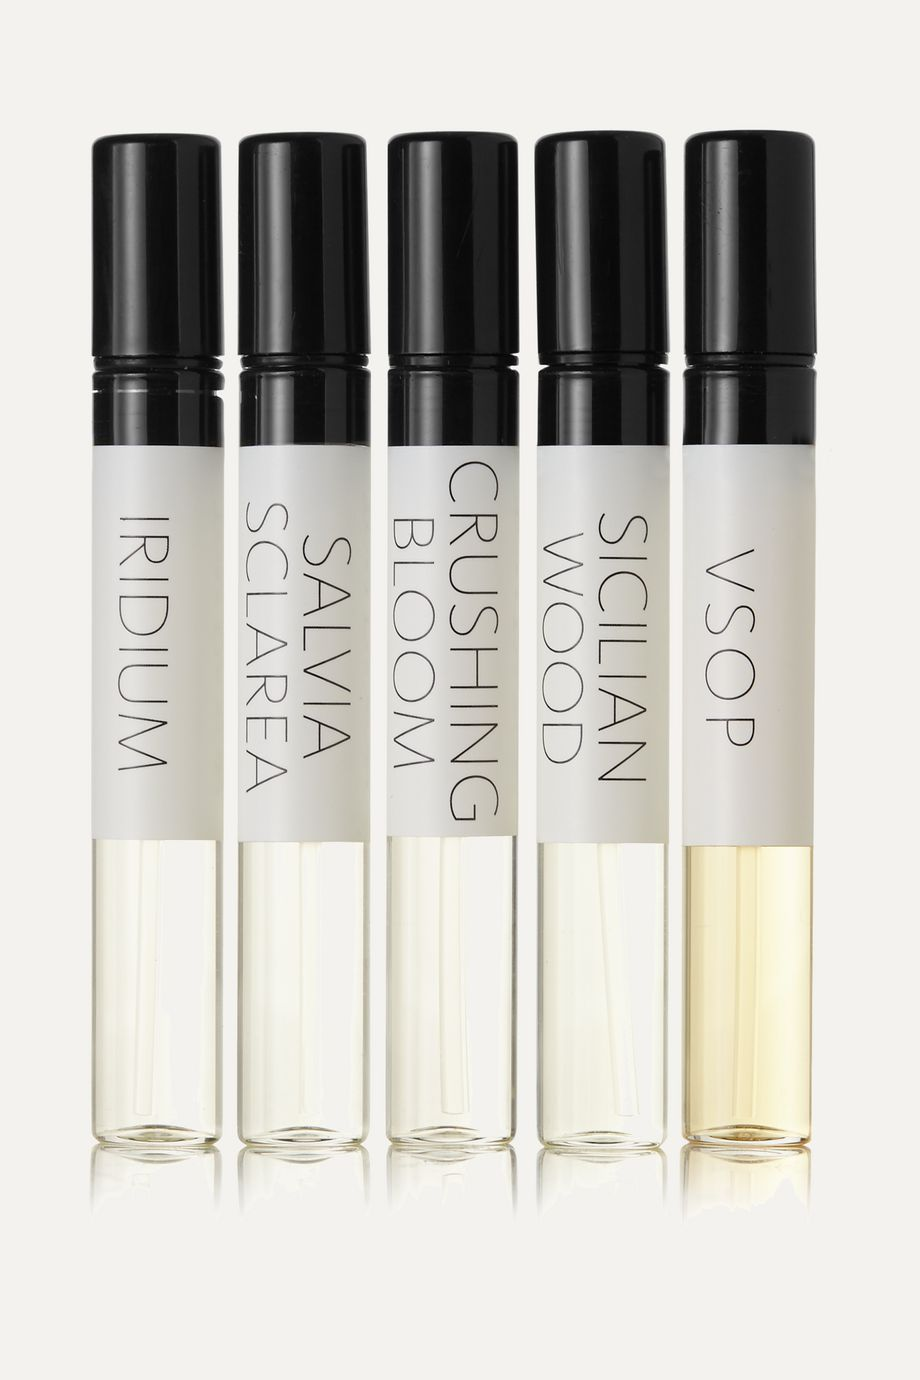 Tom Daxon Fragrance Collection